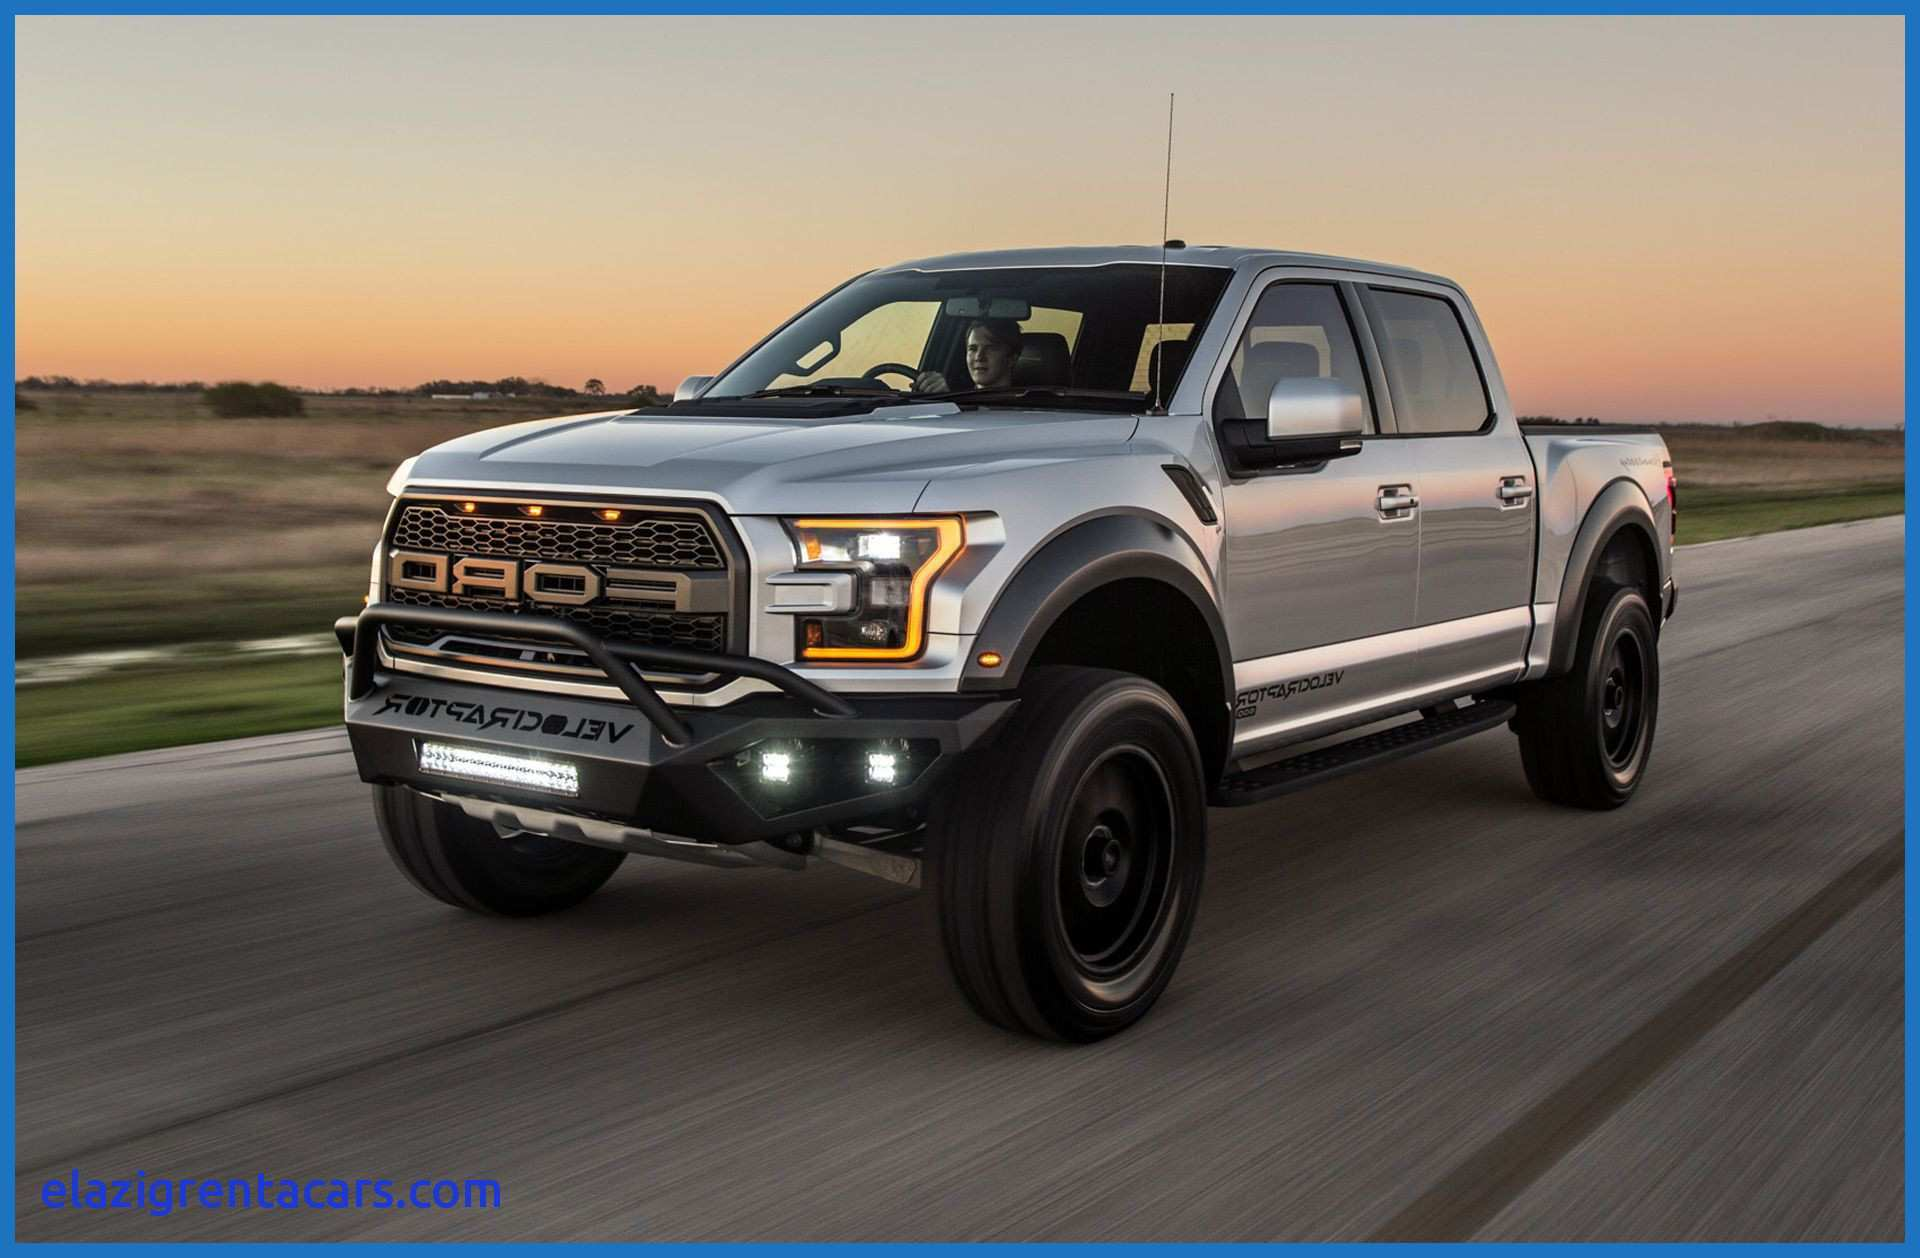 50 Best 2019 Ford Raptor 7 0L Redesign And Review